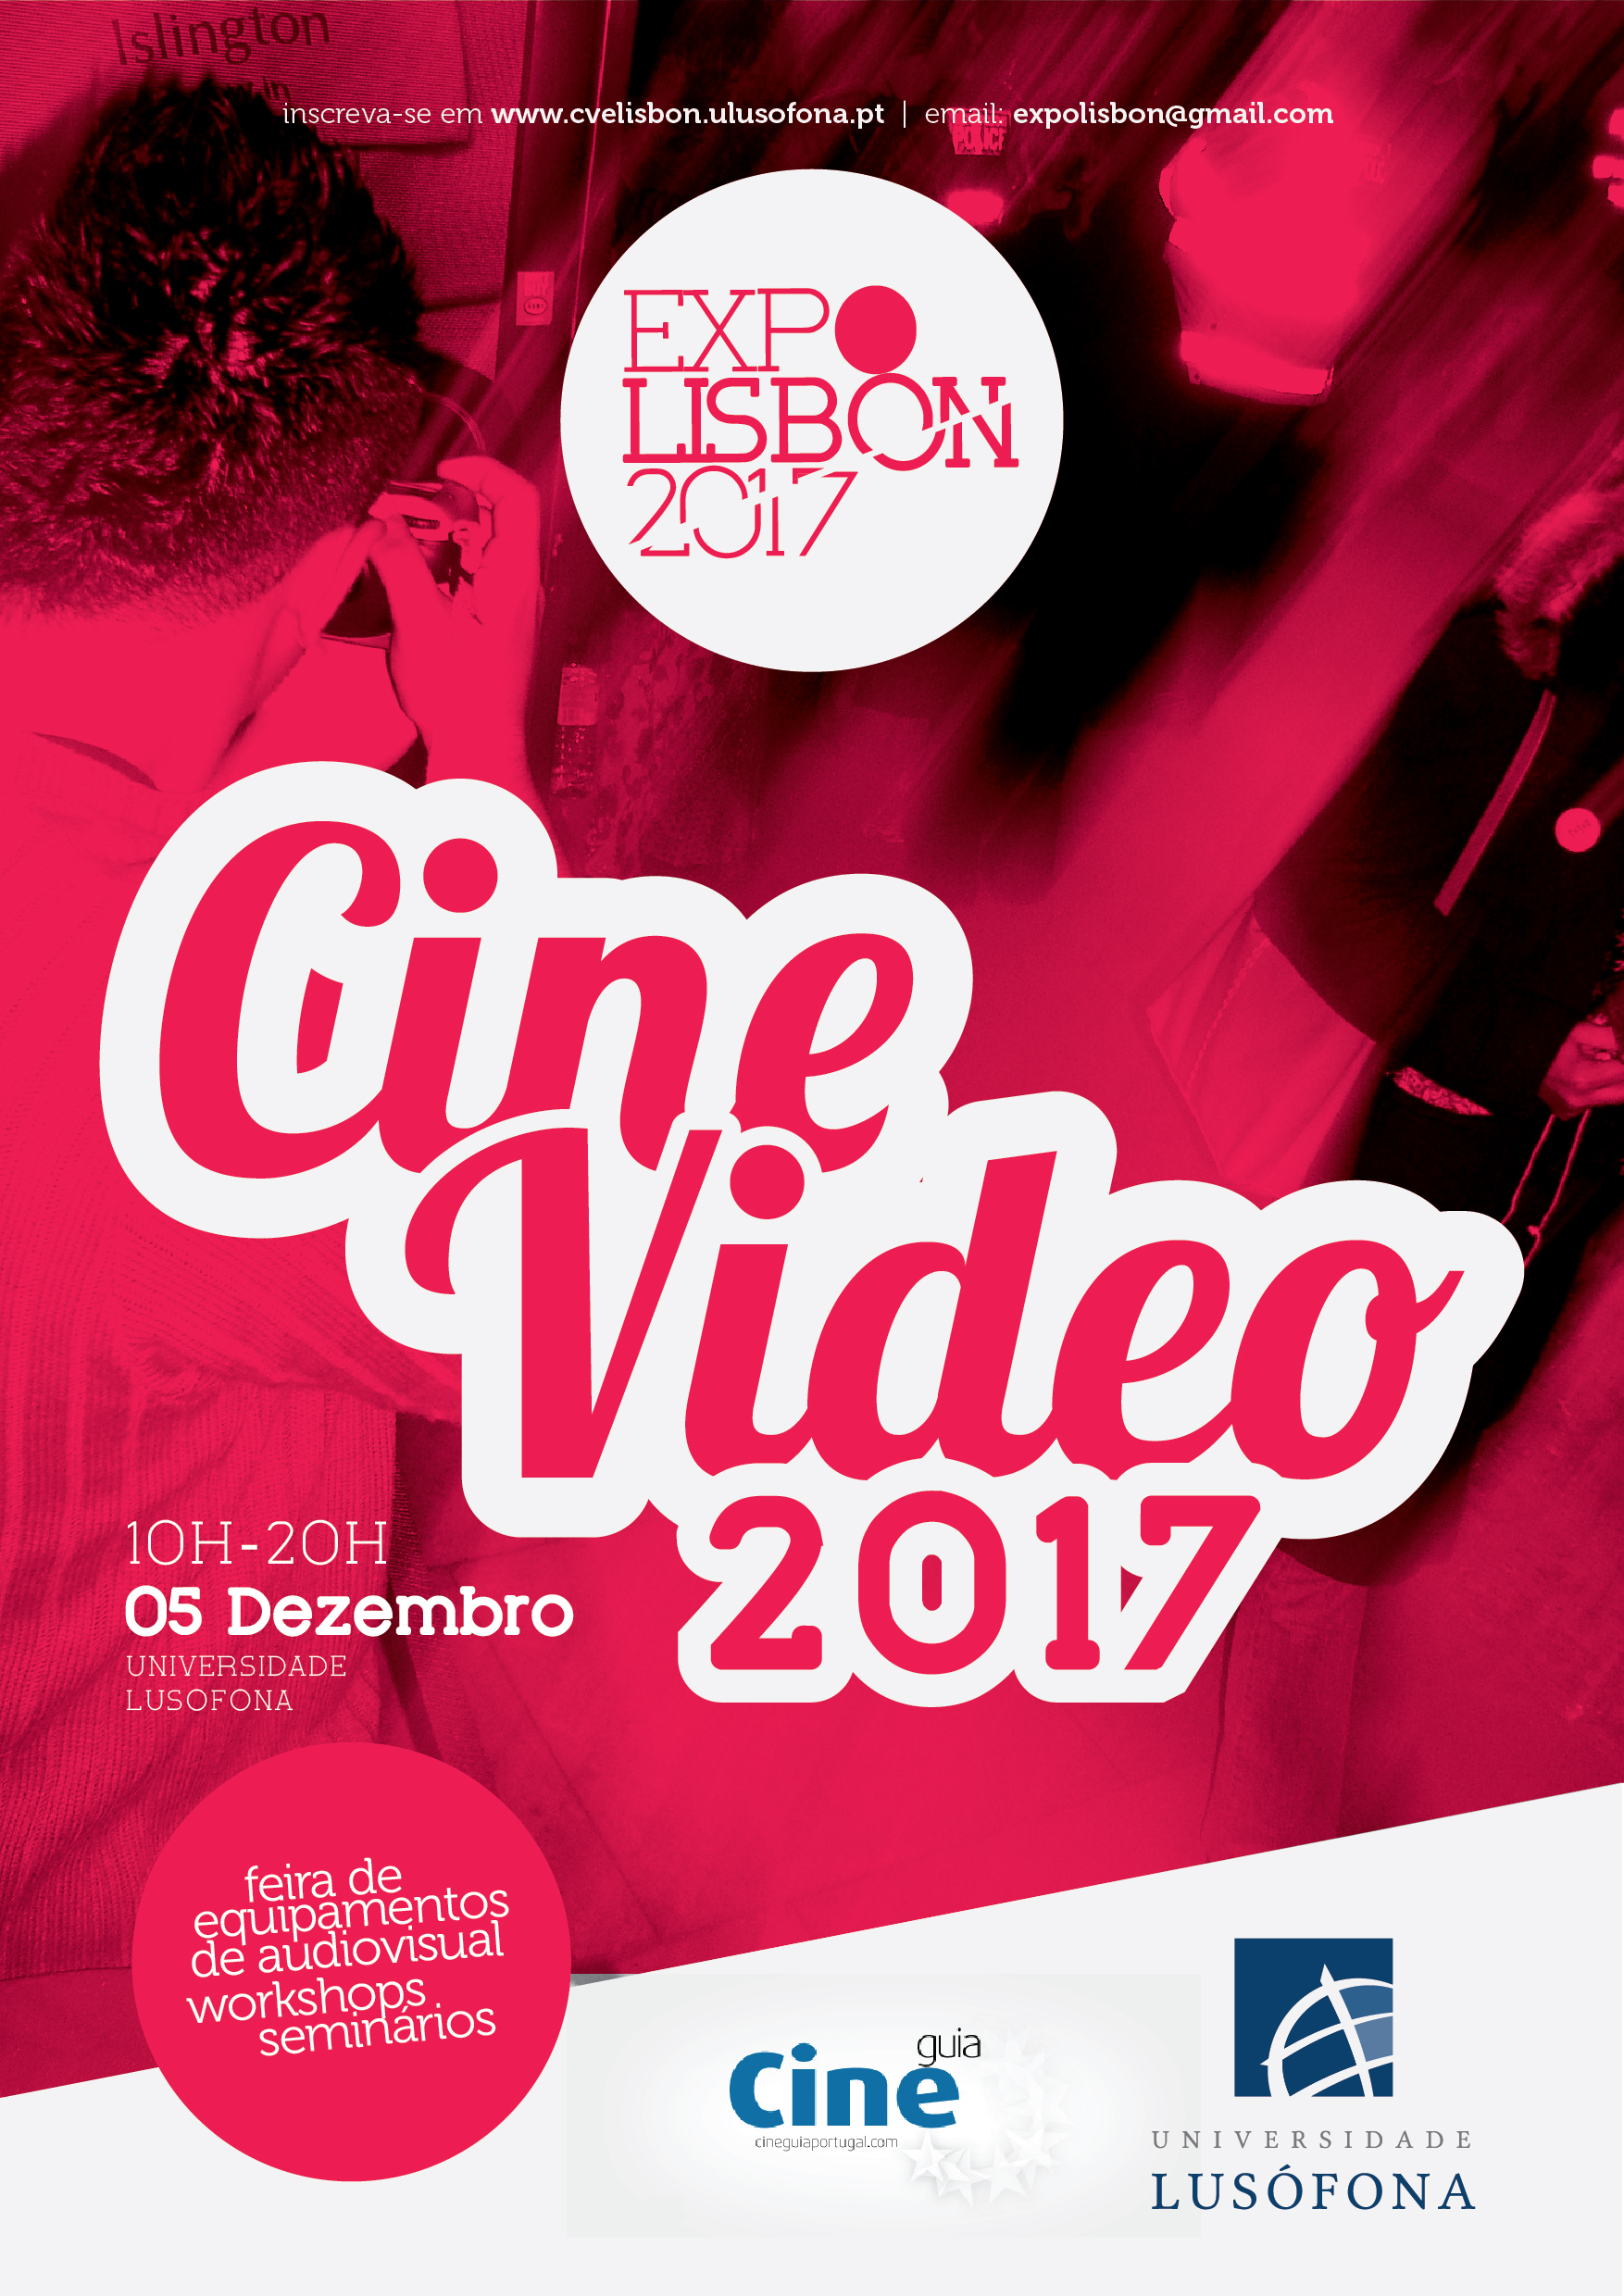 cineVIDEO_2017-01